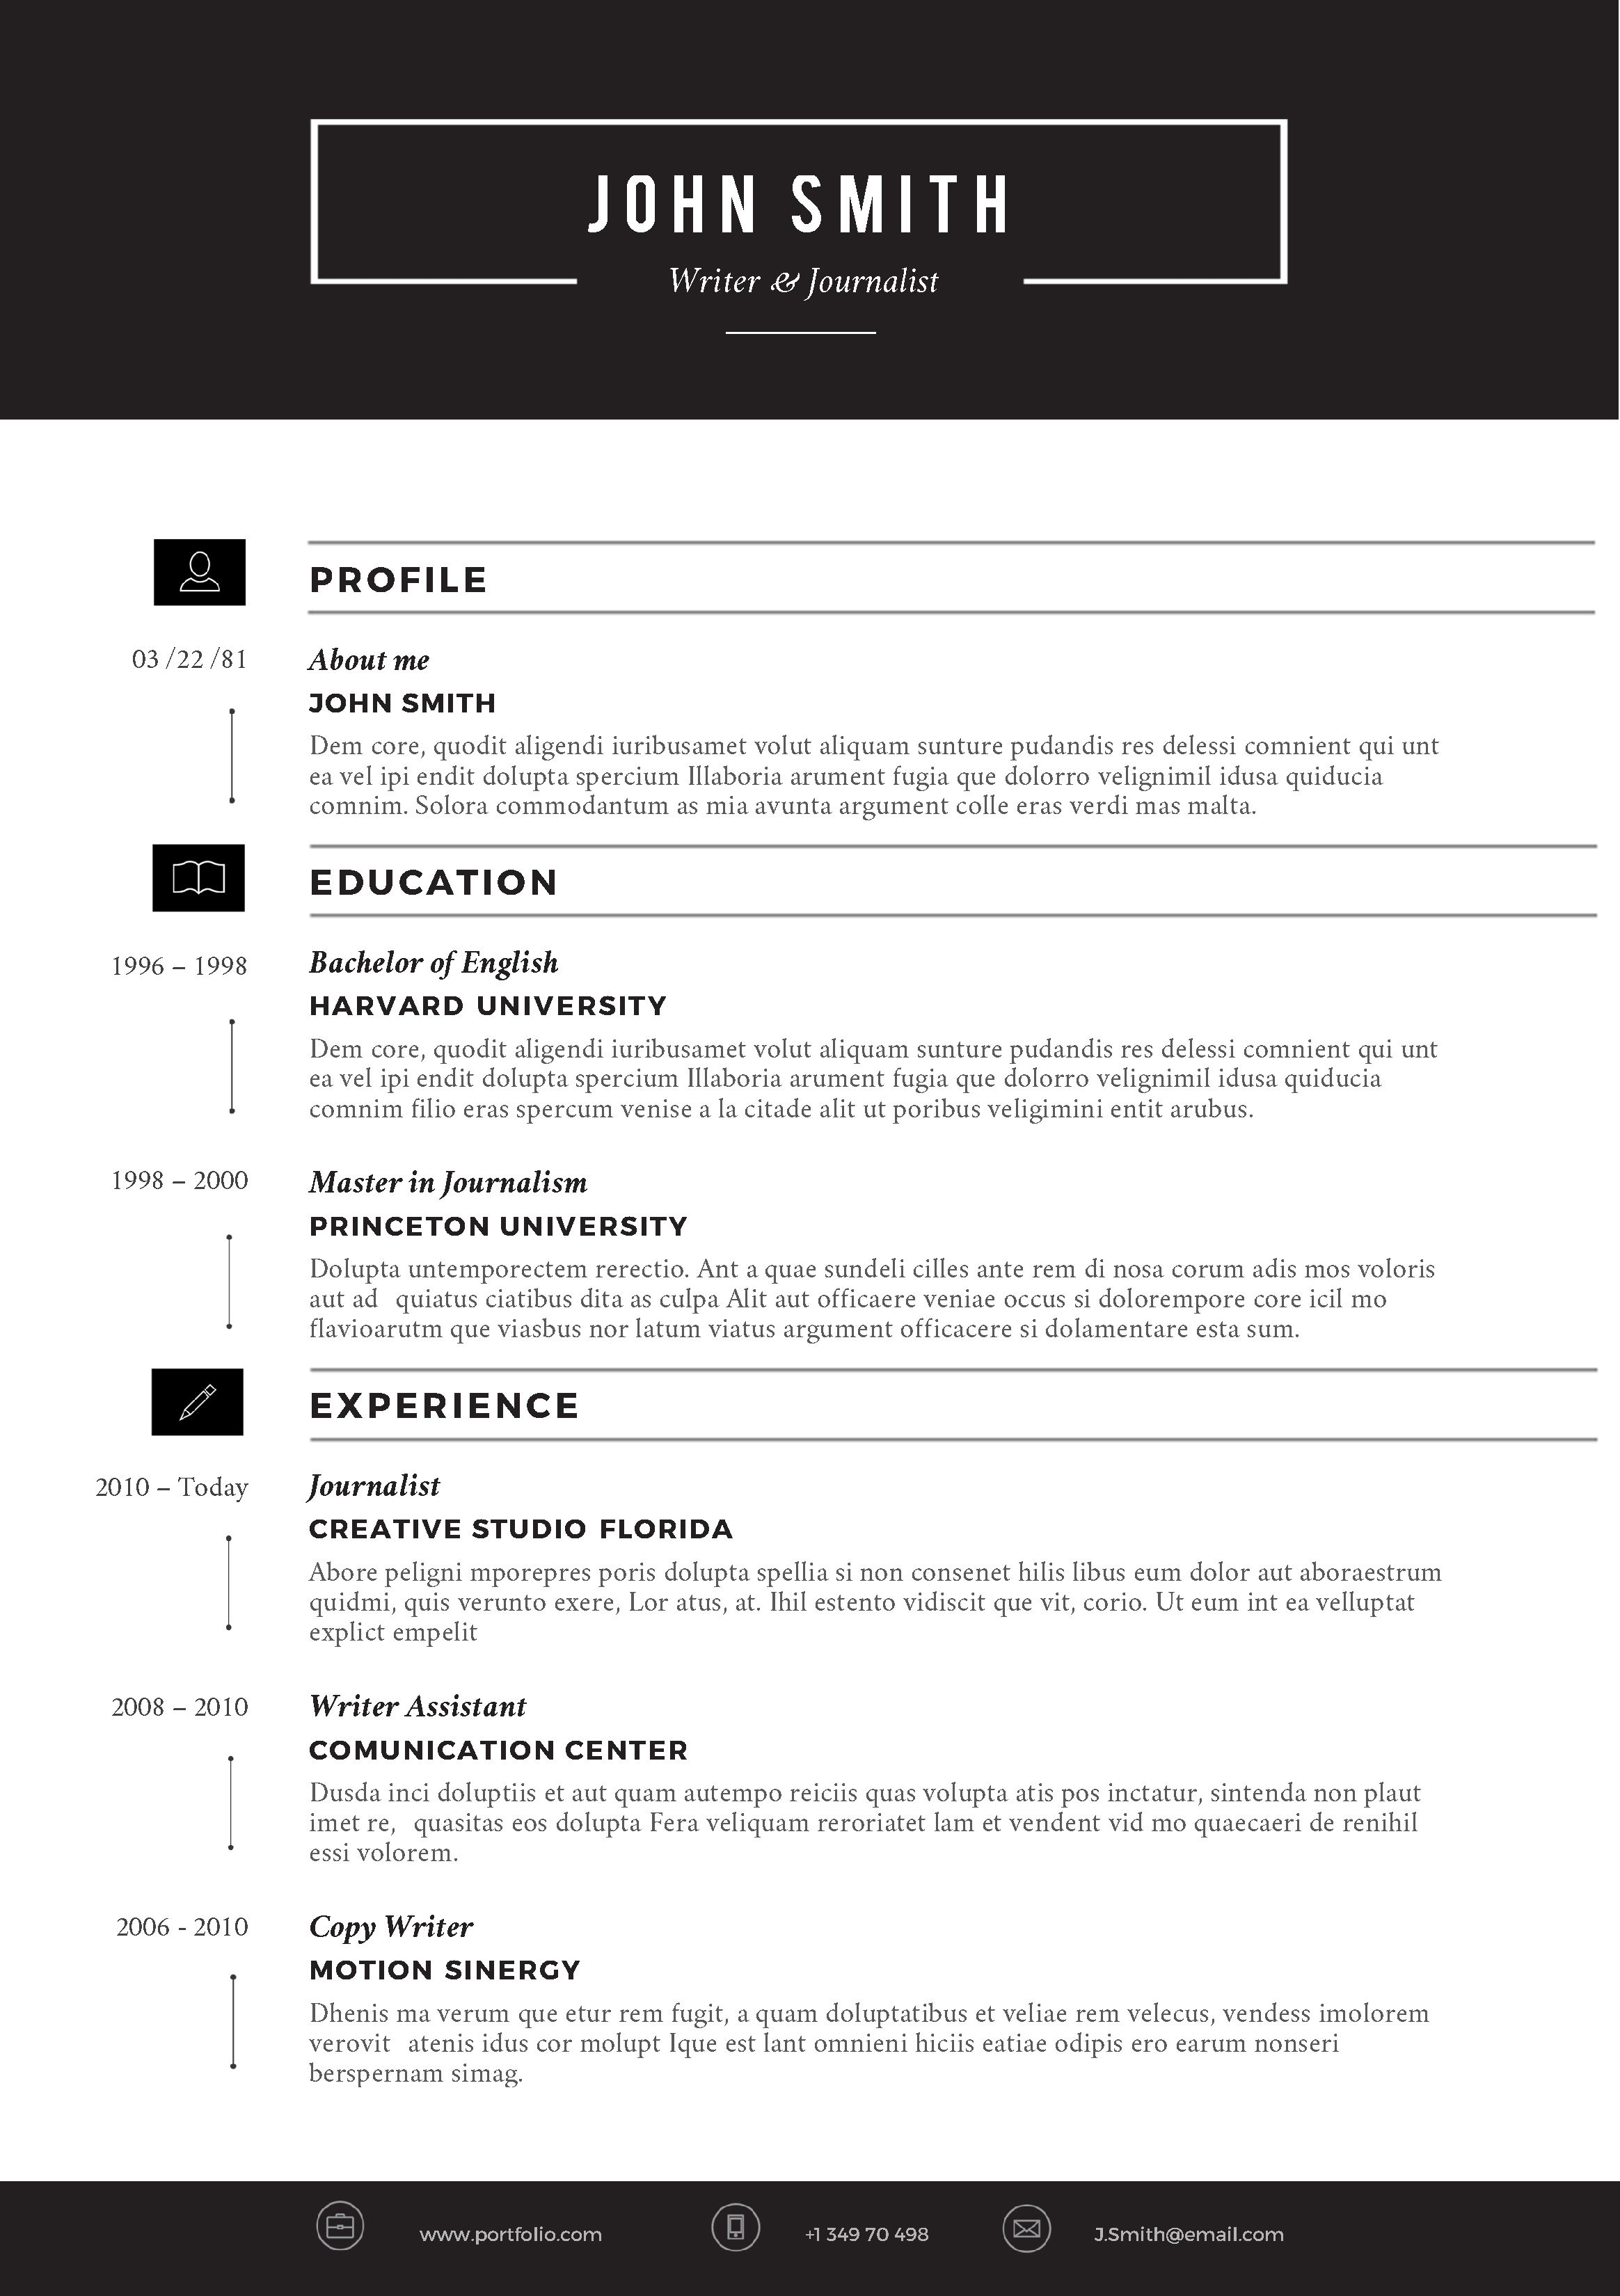 Microsoft Word Sleek Resume Template 1 Jobs Standard